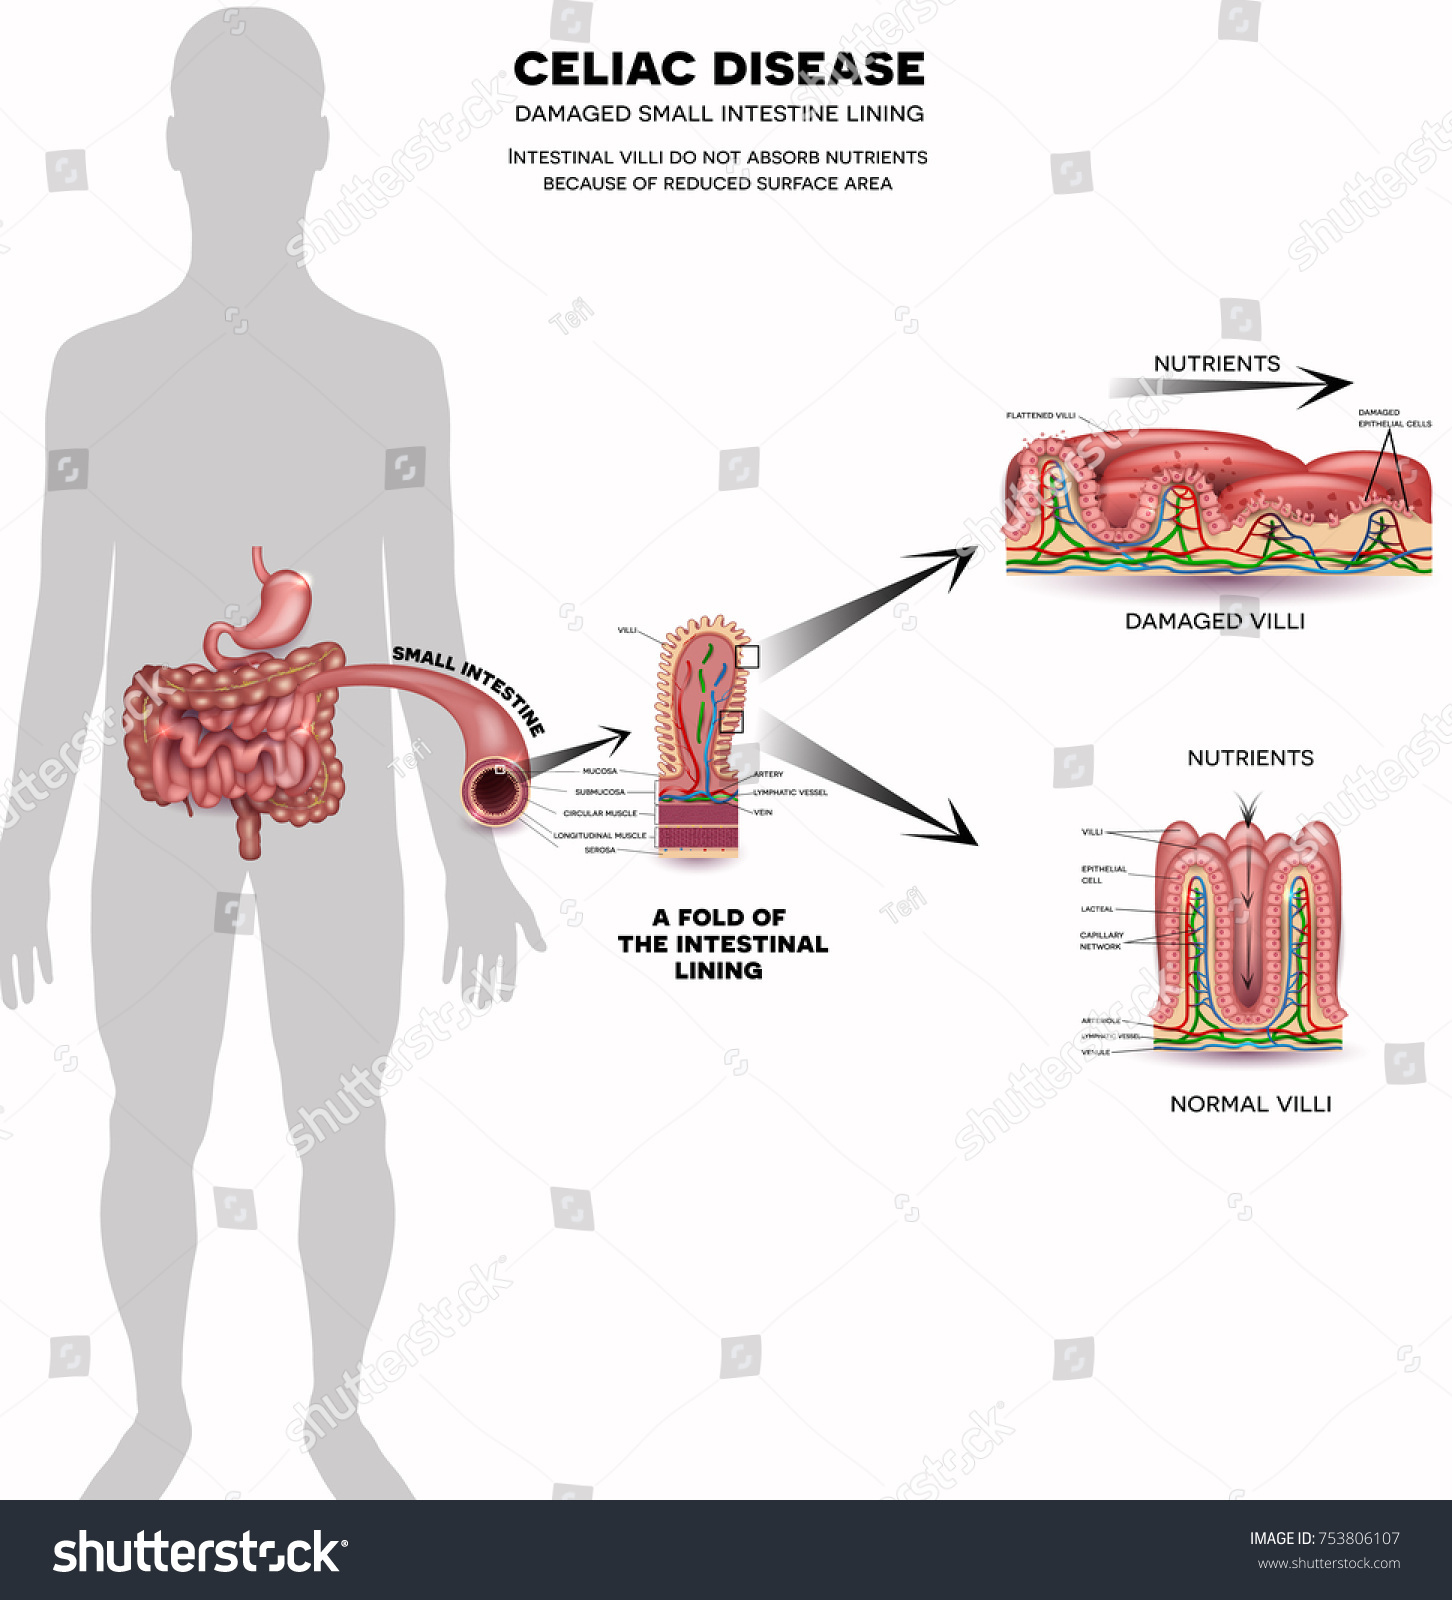 Celiac disease affected small intestine villi stock vector celiac disease affected small intestine villi damaged cells by bodys reaction to gluten intestinal pooptronica